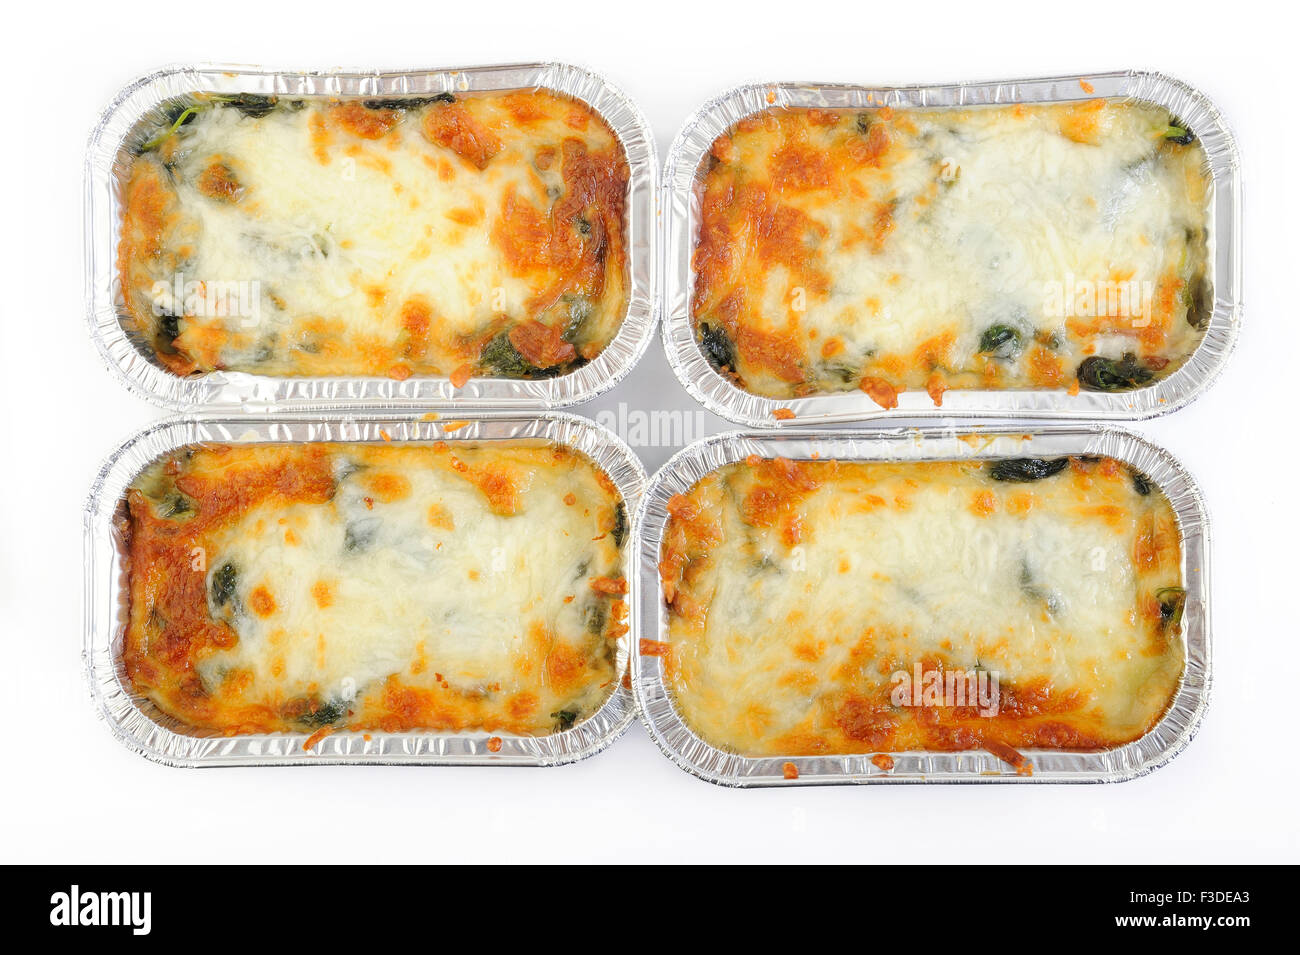 baked spinach with cheese in aluminium foil tray - Stock Image